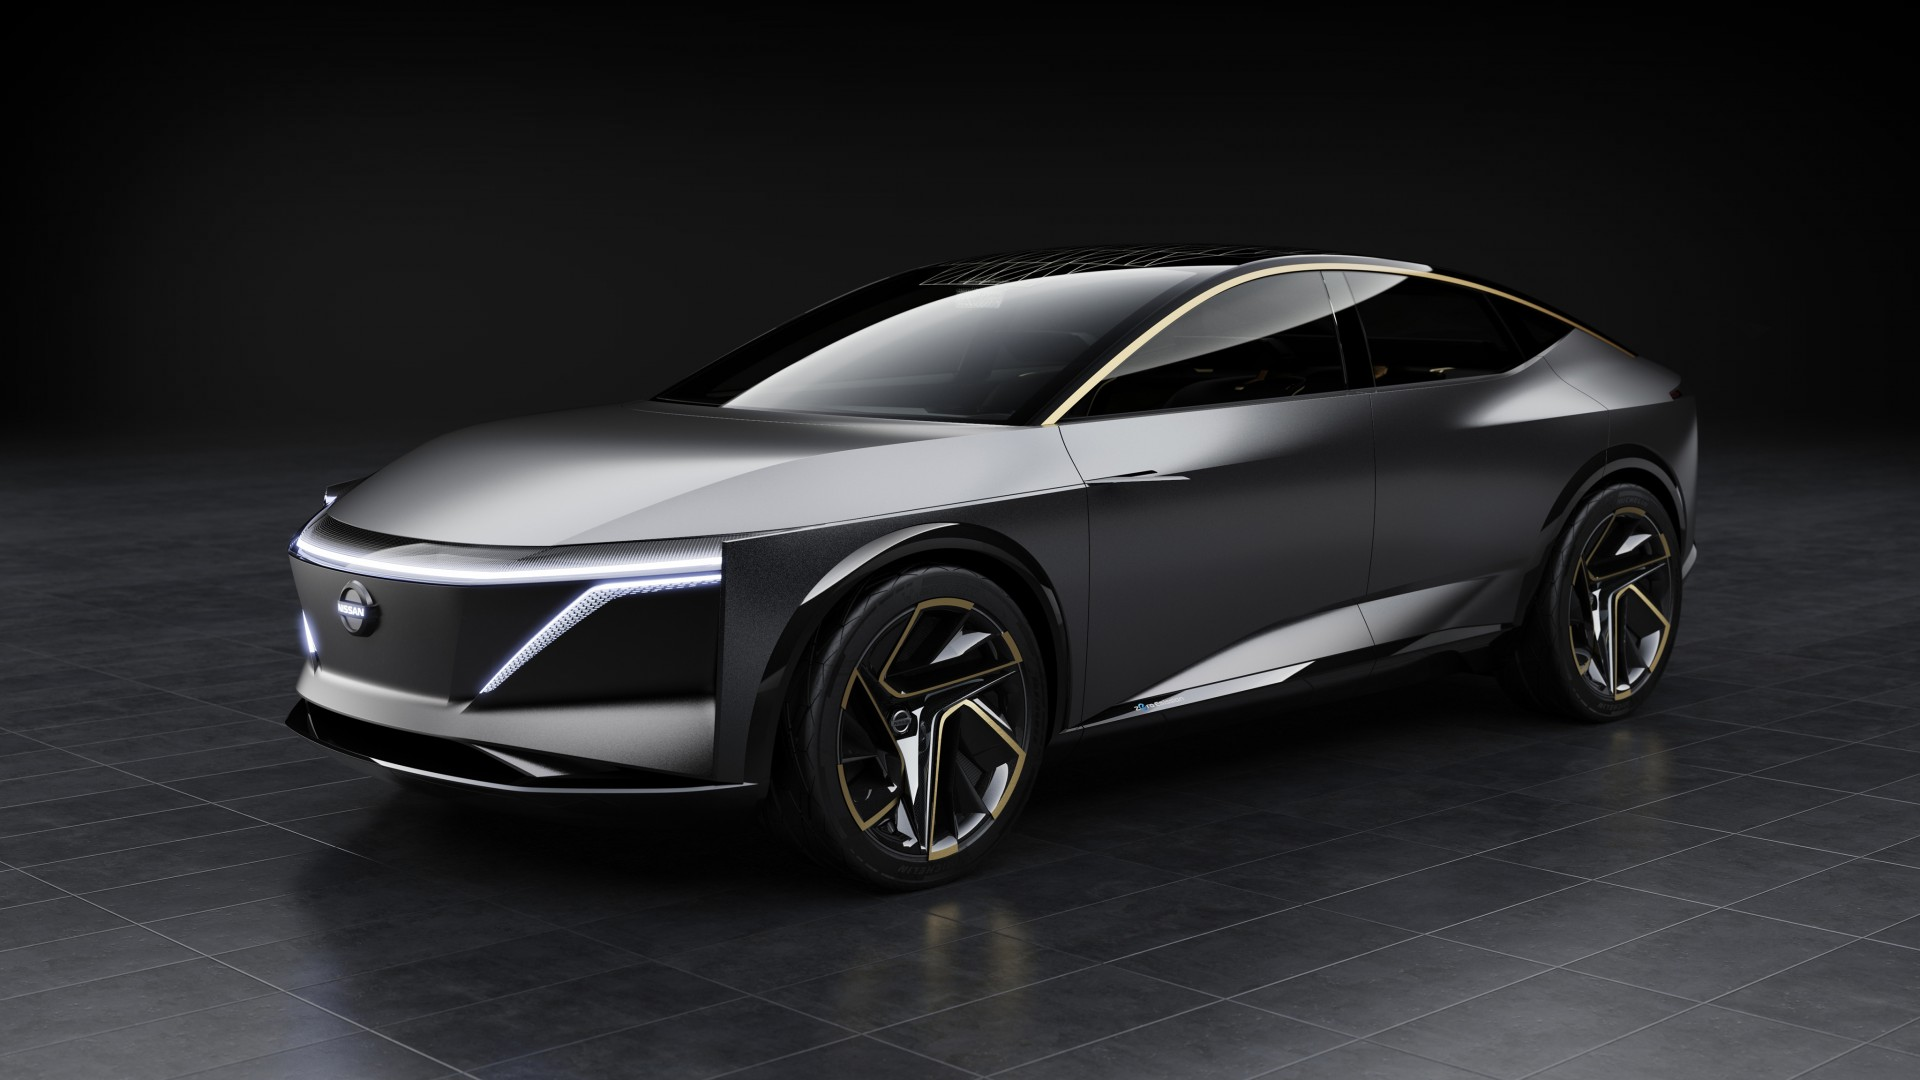 Nissan IMs Concept 2019 4K 2 Wallpaper | HD Car Wallpapers ...